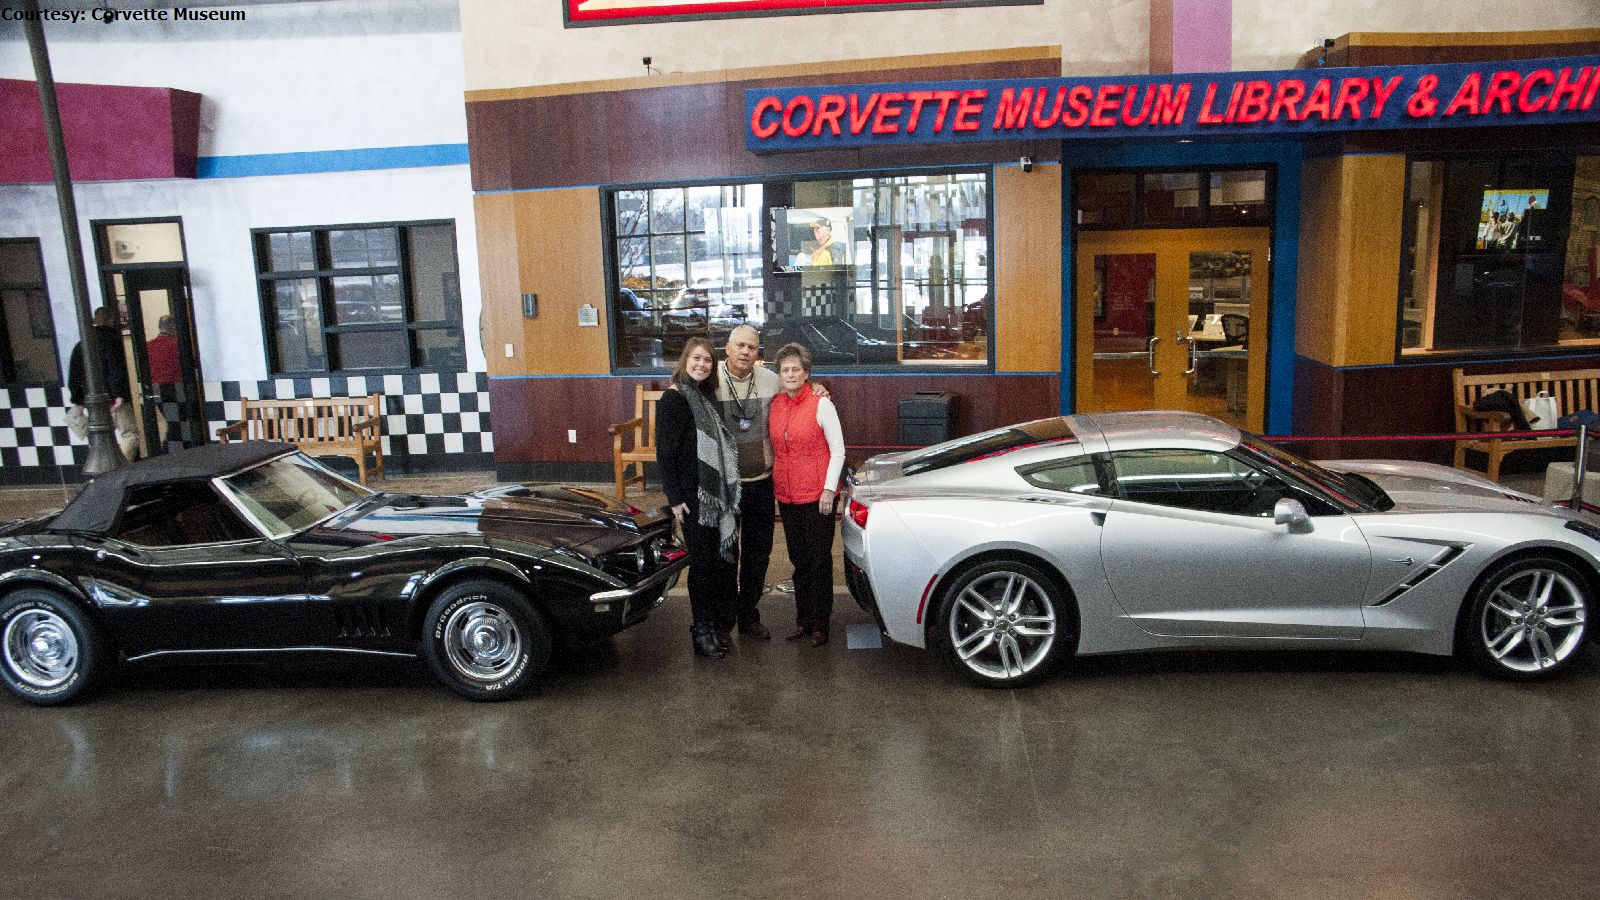 Romancing the Corvette: Stories of Love